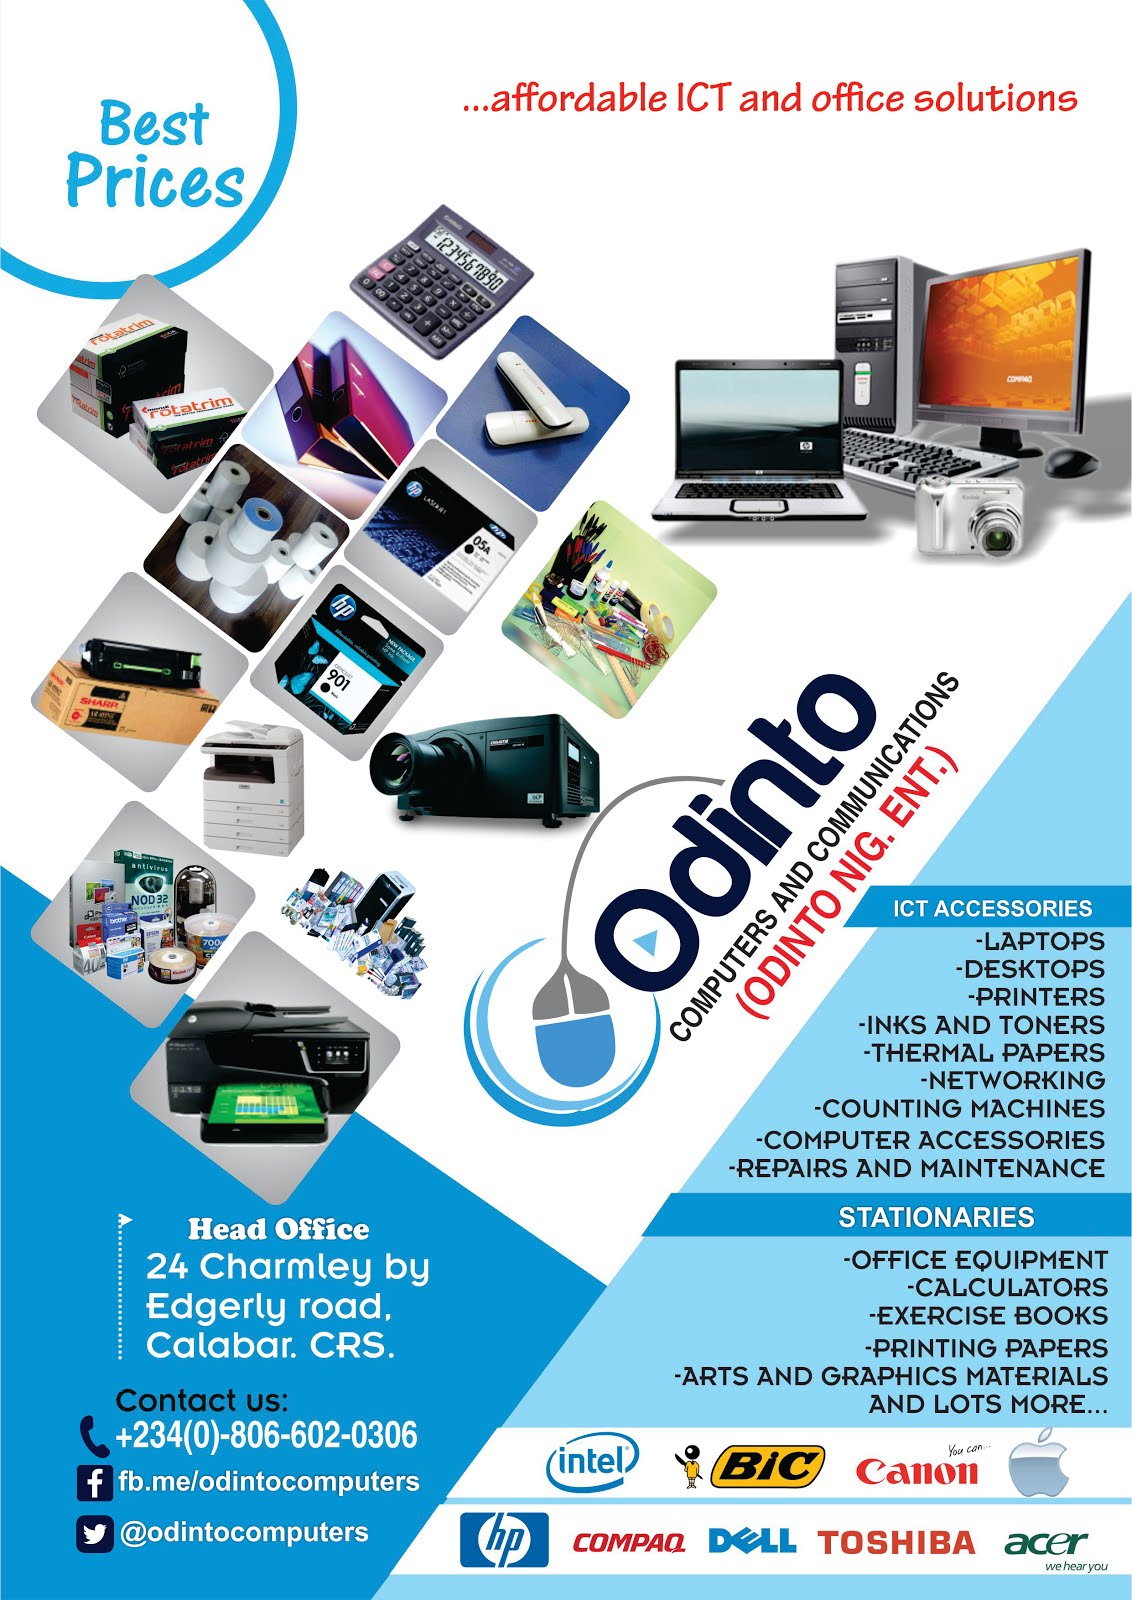 Odinto Computers & Communications